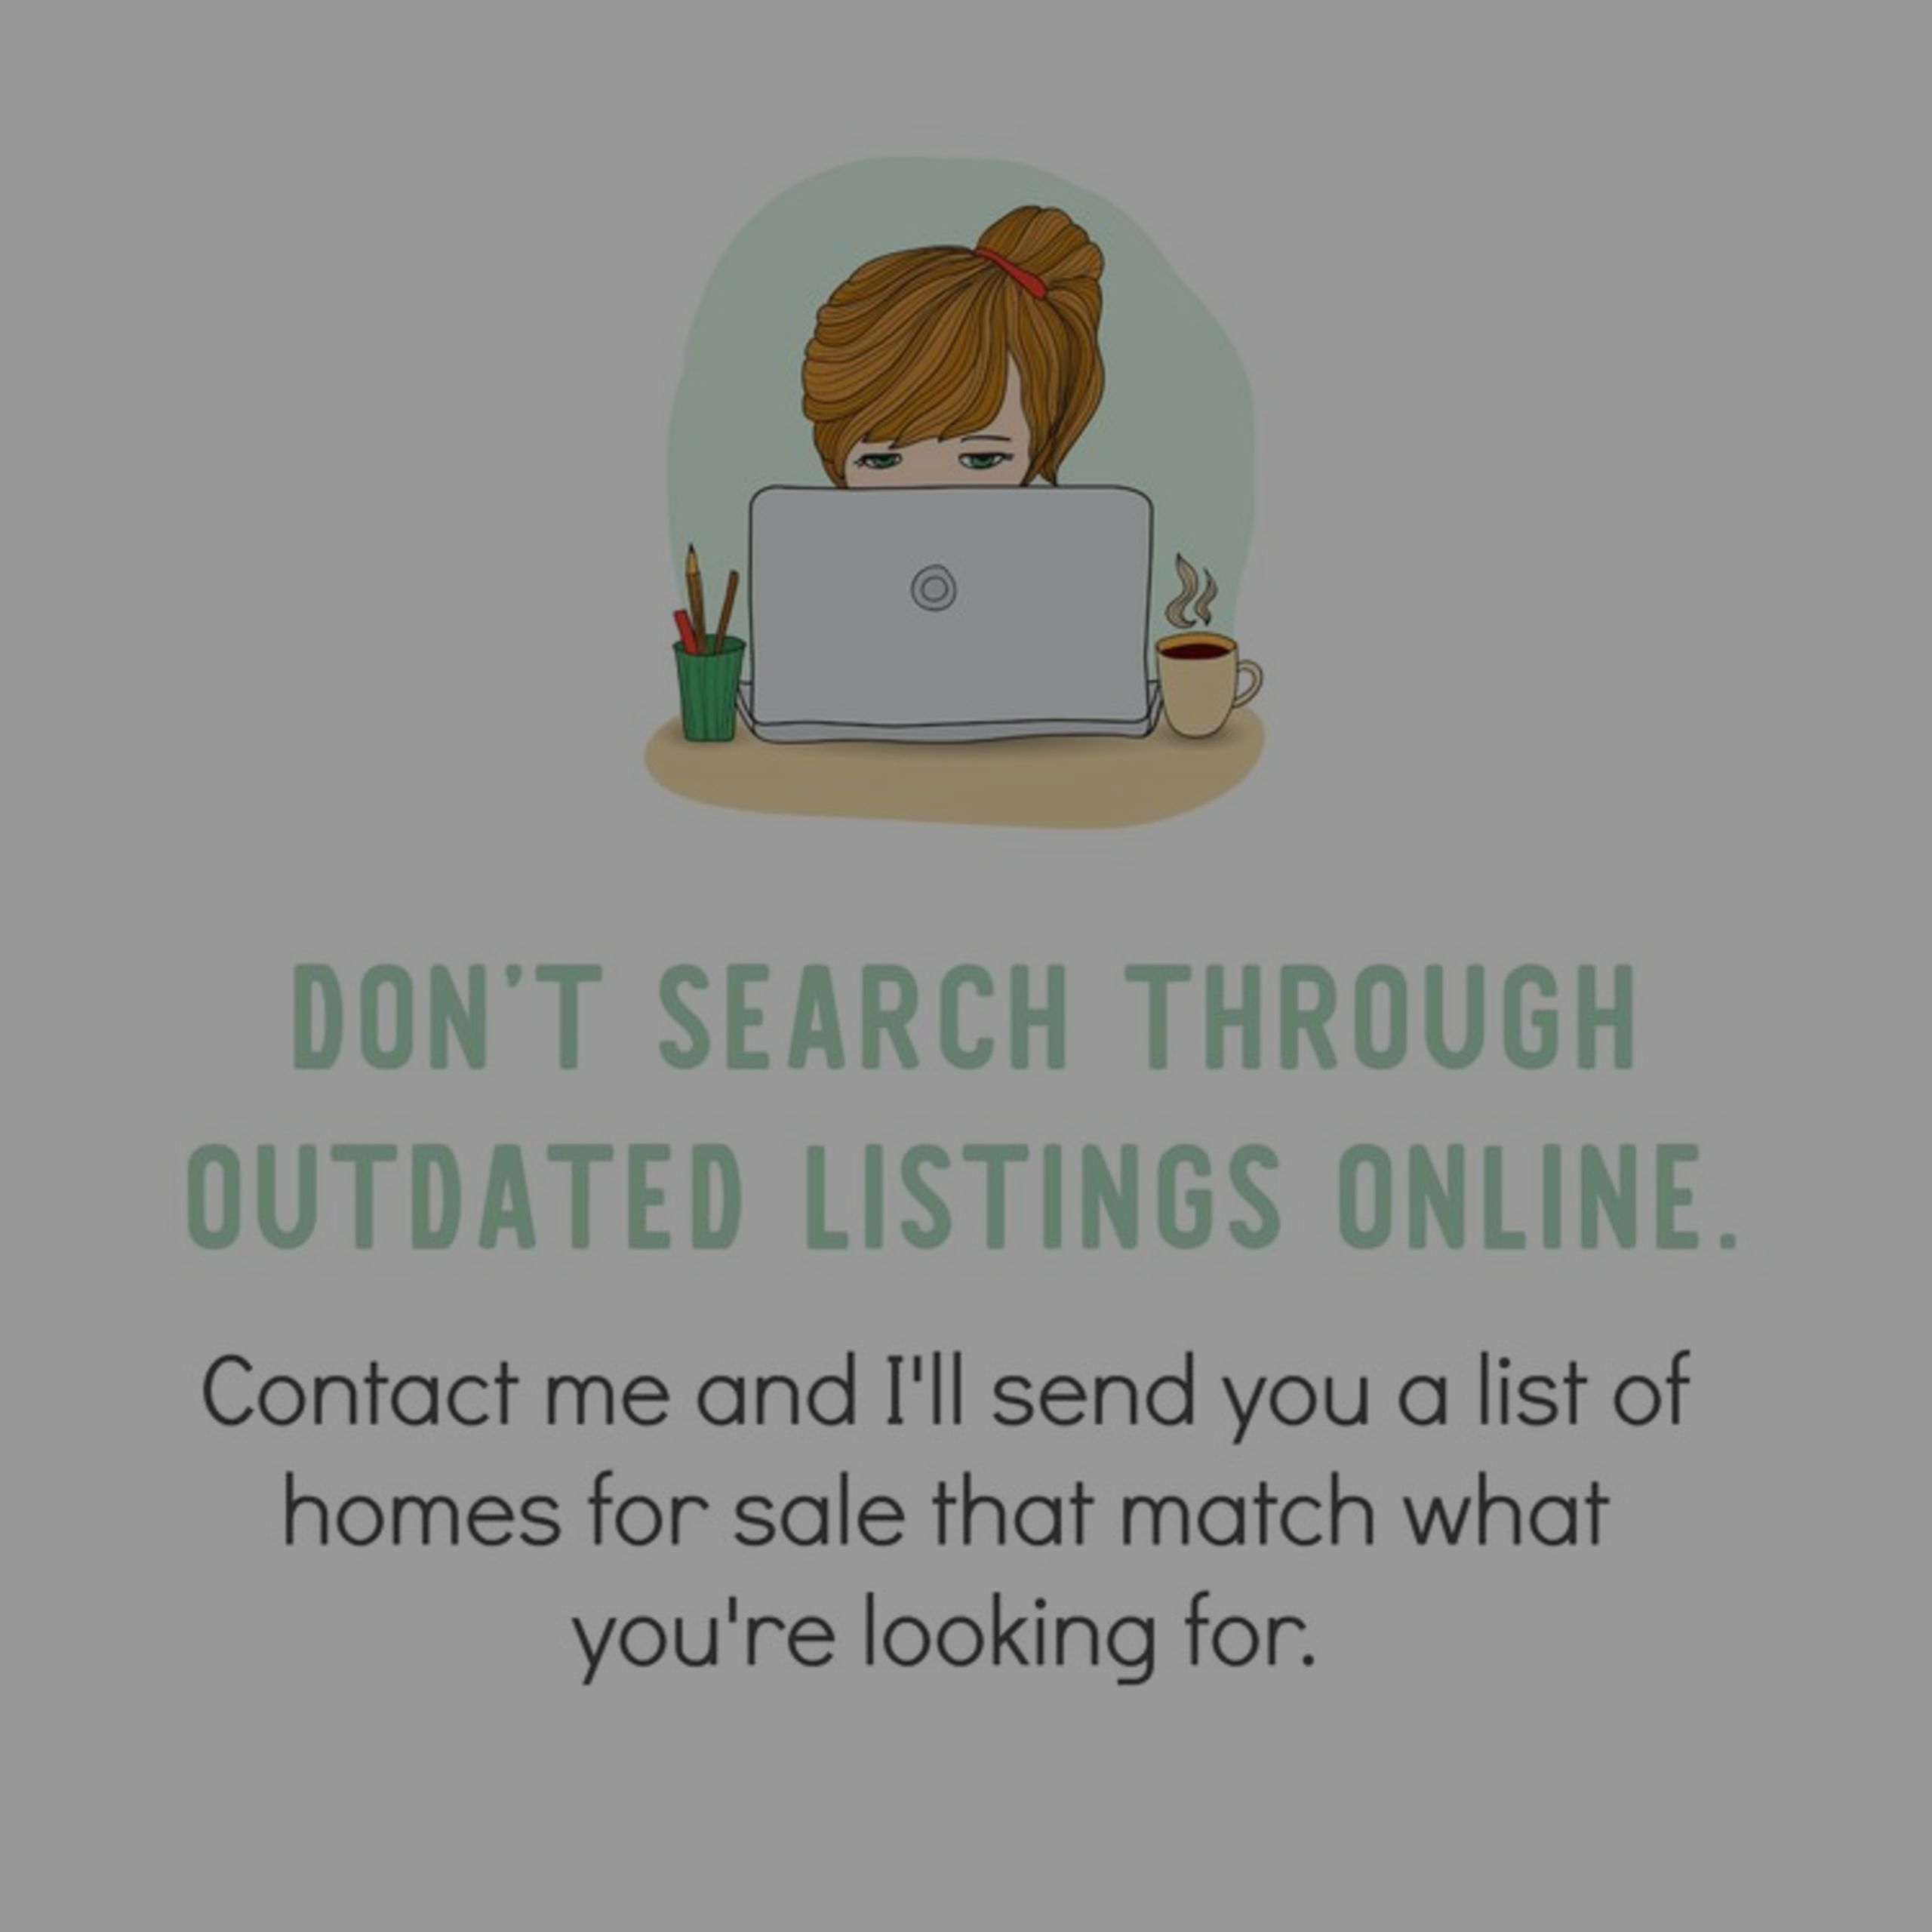 Searching for homes online? Avoid searching for homes with outdated information! Call The Rager Group